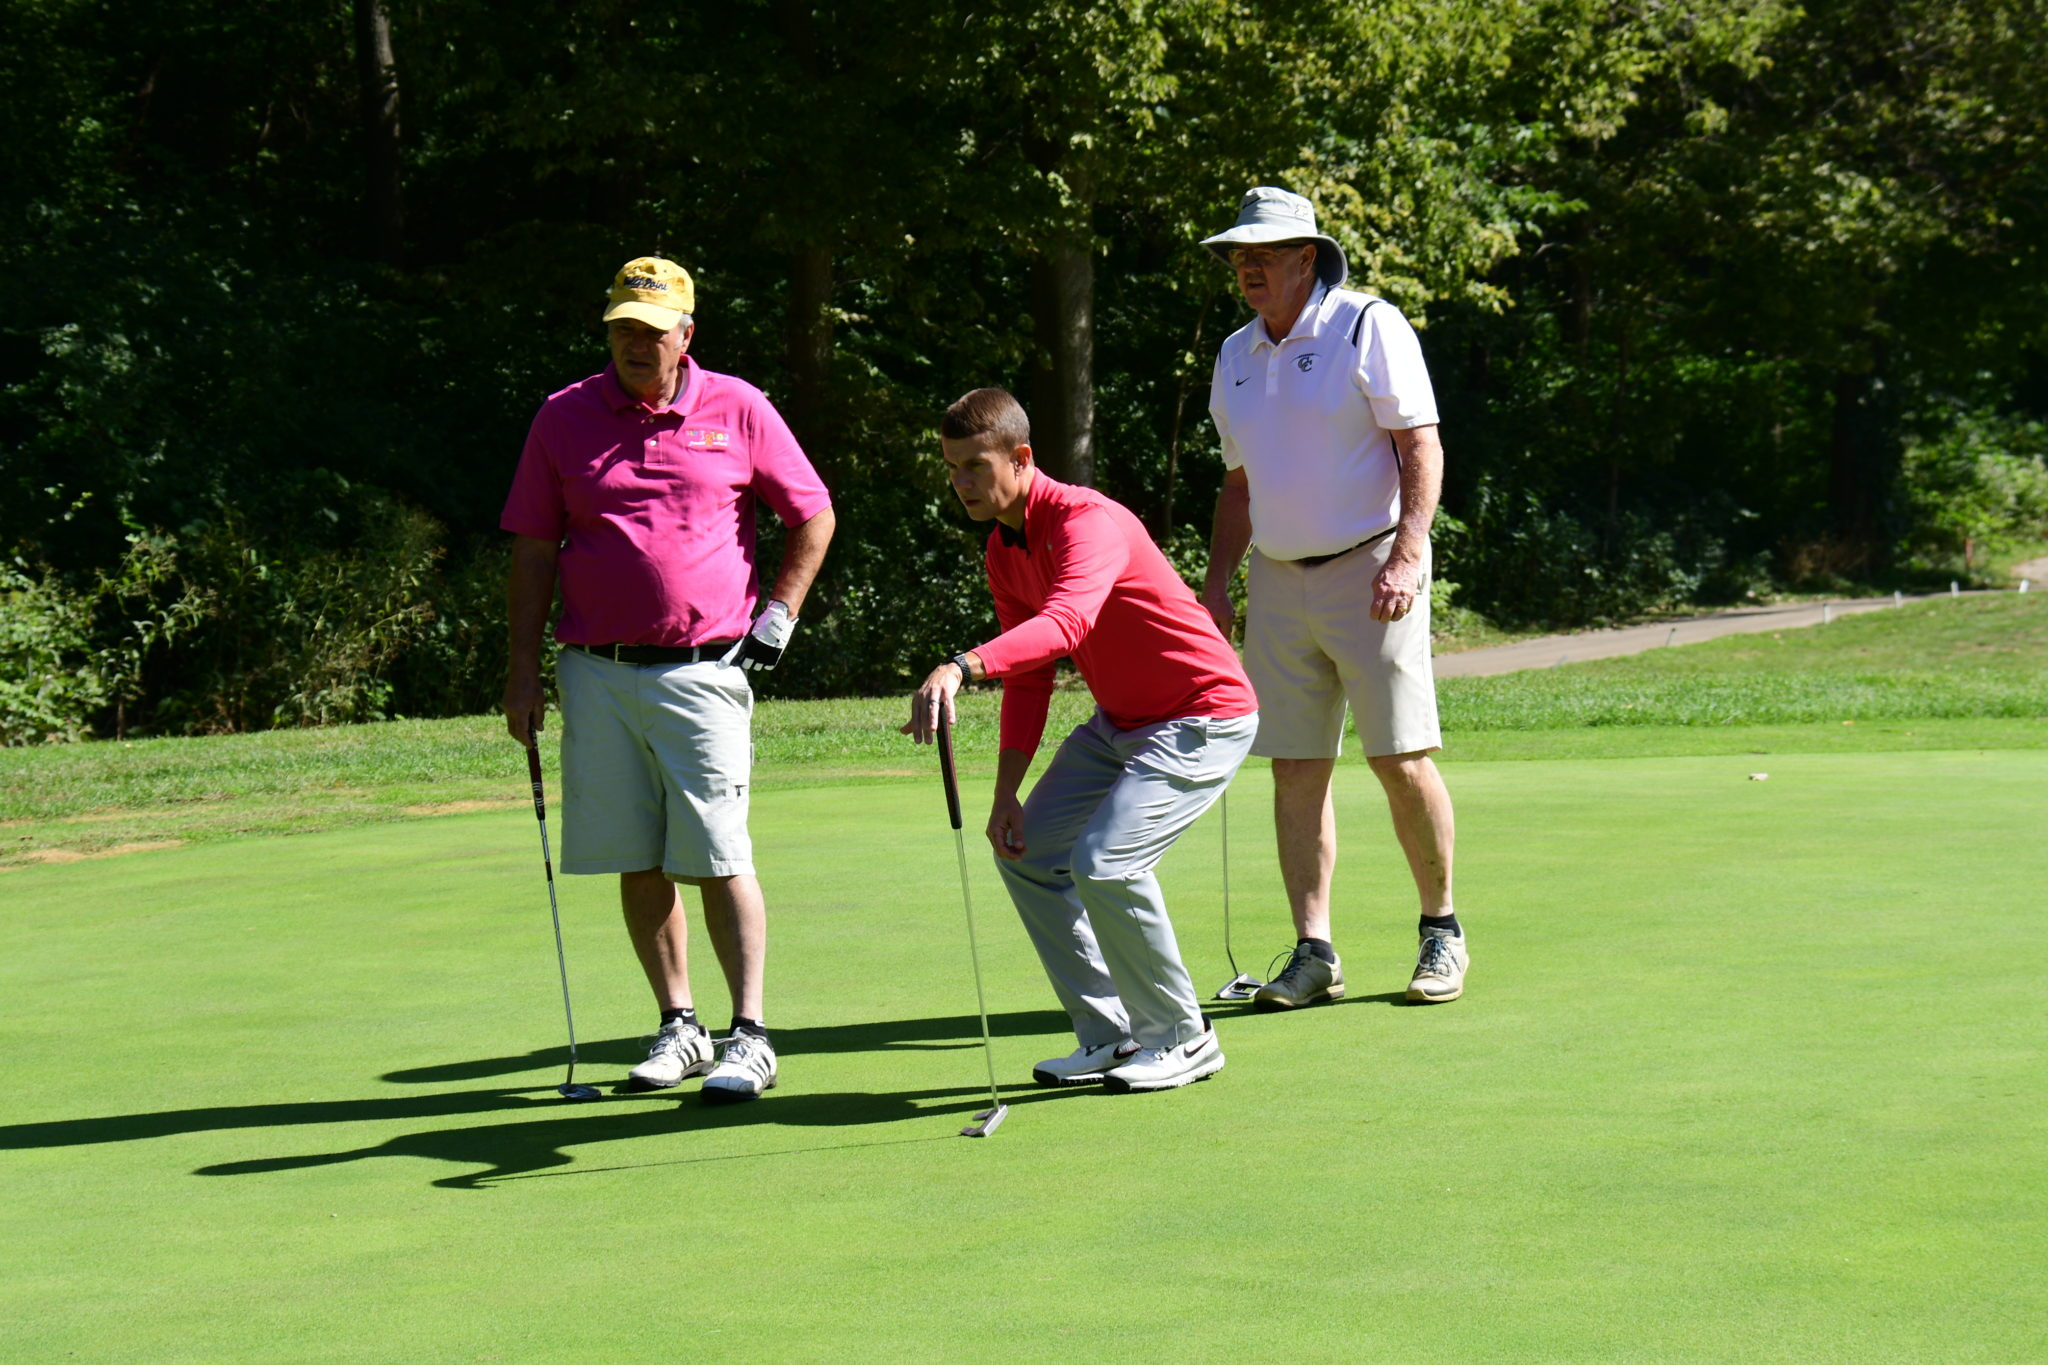 The 28th Annual LCSS Golf Outing